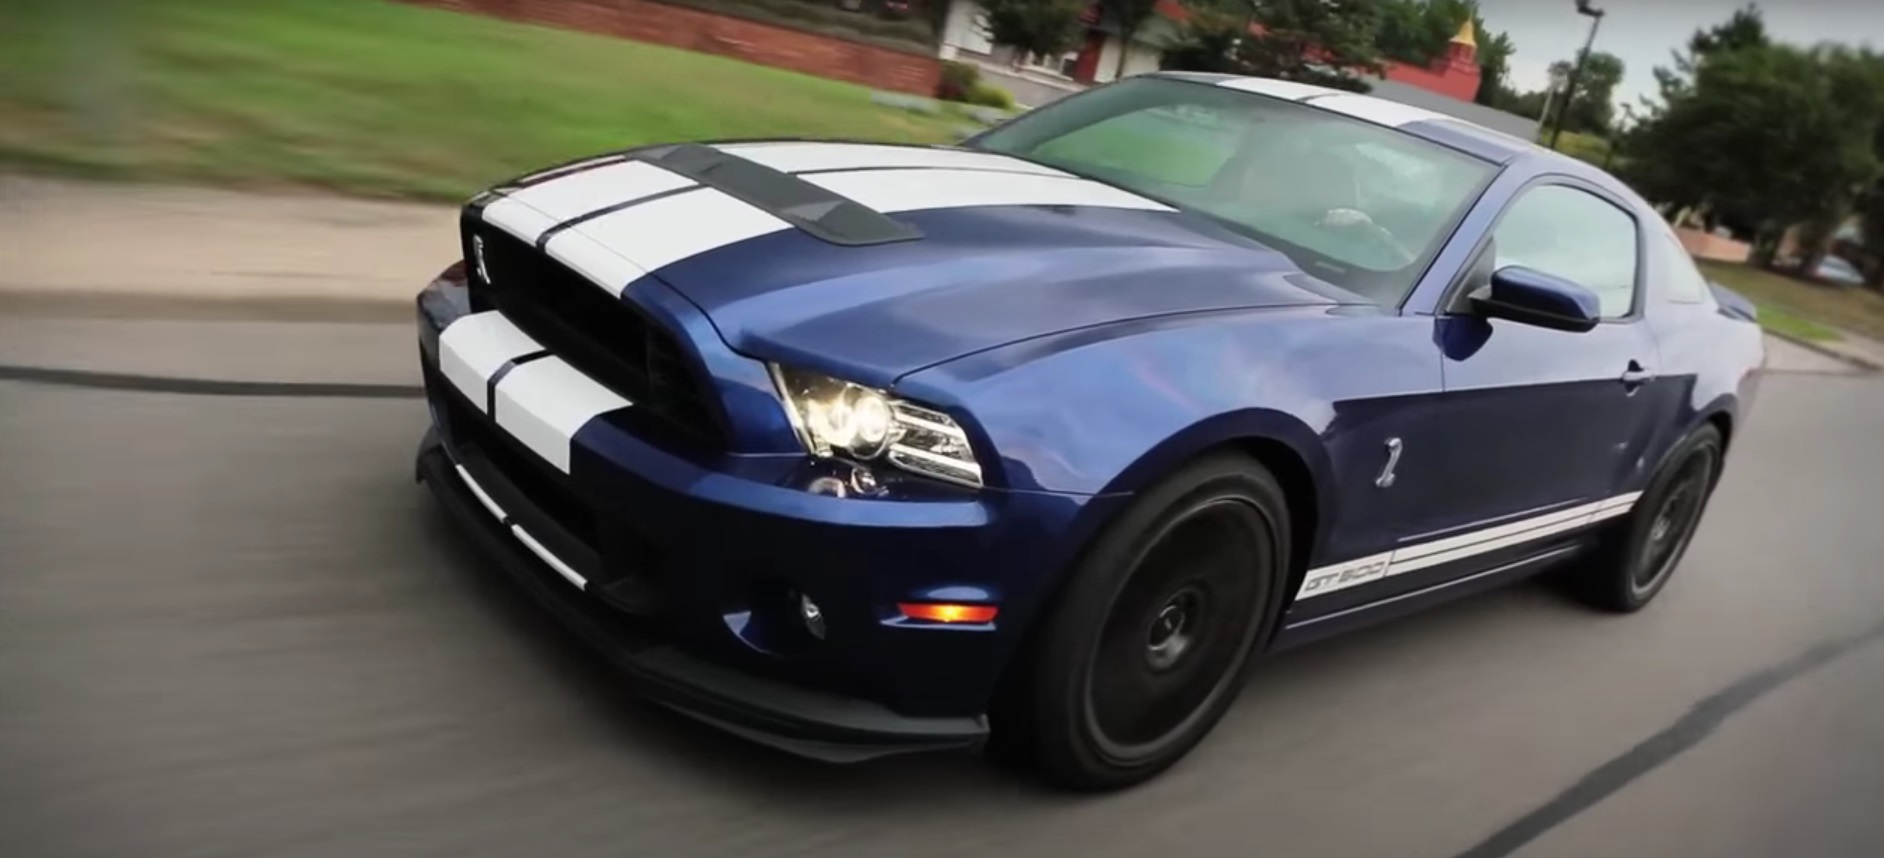 Video: 2012 Ford Mustang GT500 & 2012 Chevrolet Camaro ZL1 - Which Is Better?